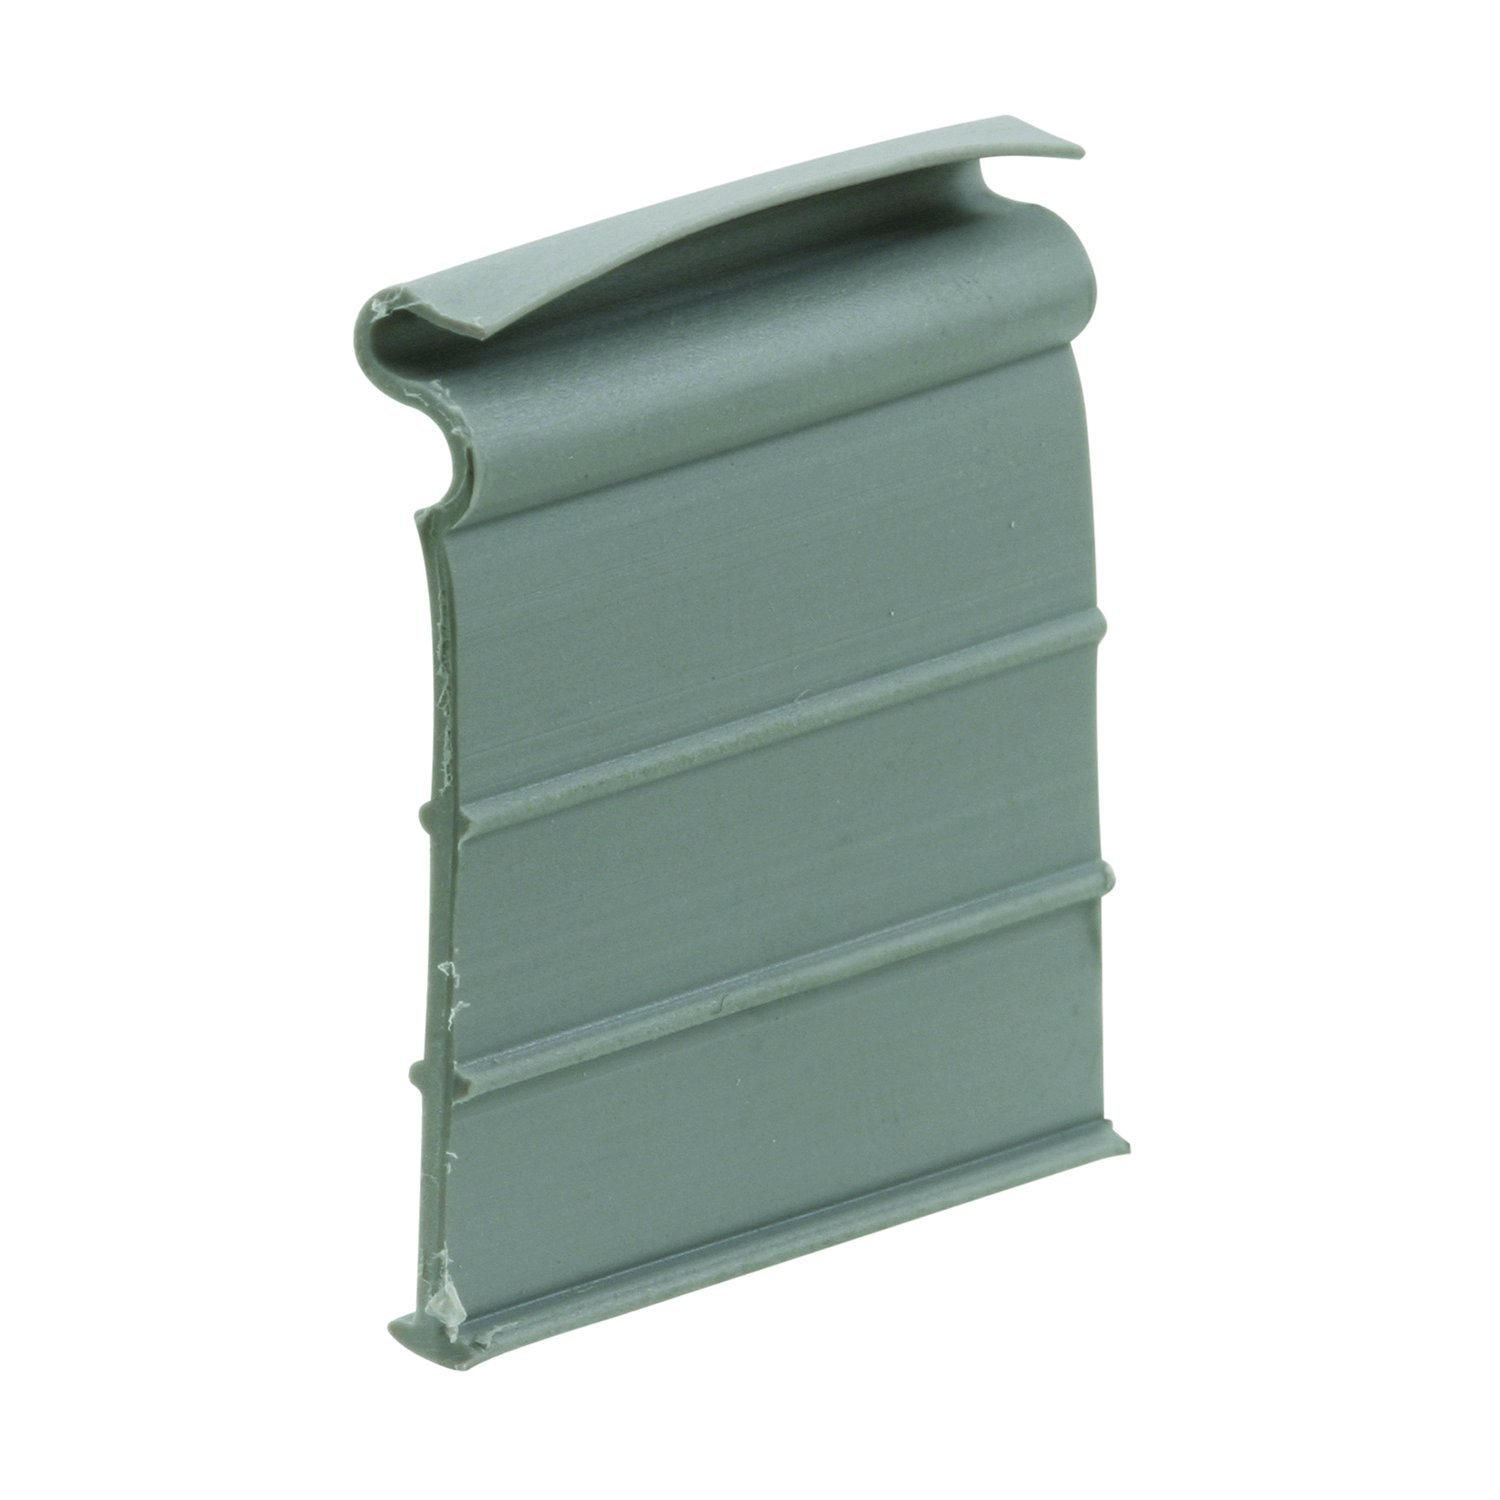 Prime Line Products PL 8143 Flexible Vinyl Pull Tabs Pack of 6 Gray